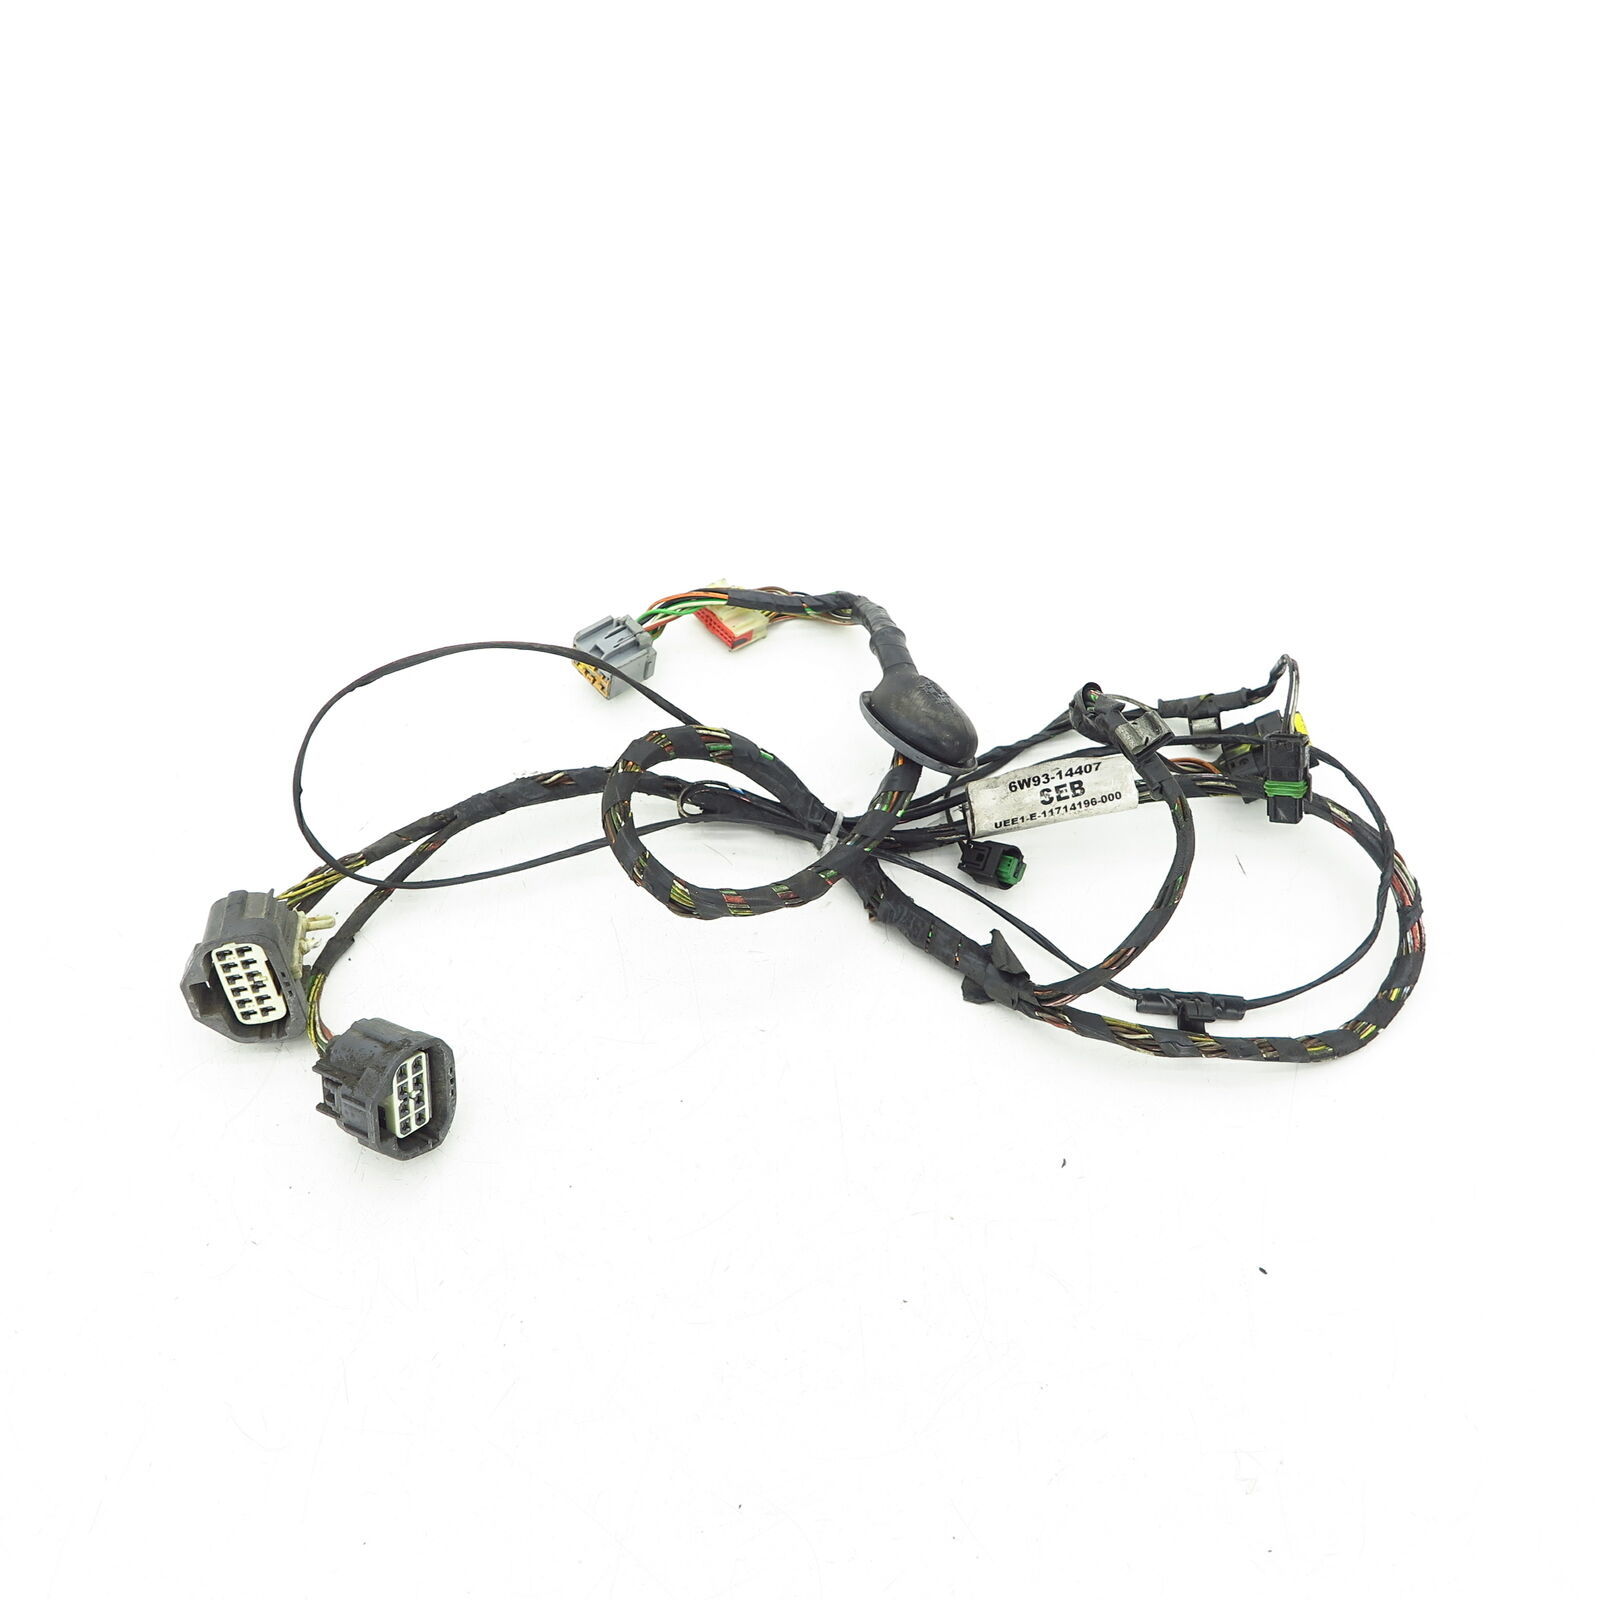 Wiring Harness Fuel Pump Jaguar Xj X350 X358 6 6w93 14407 3eb 1 Of 1only Available